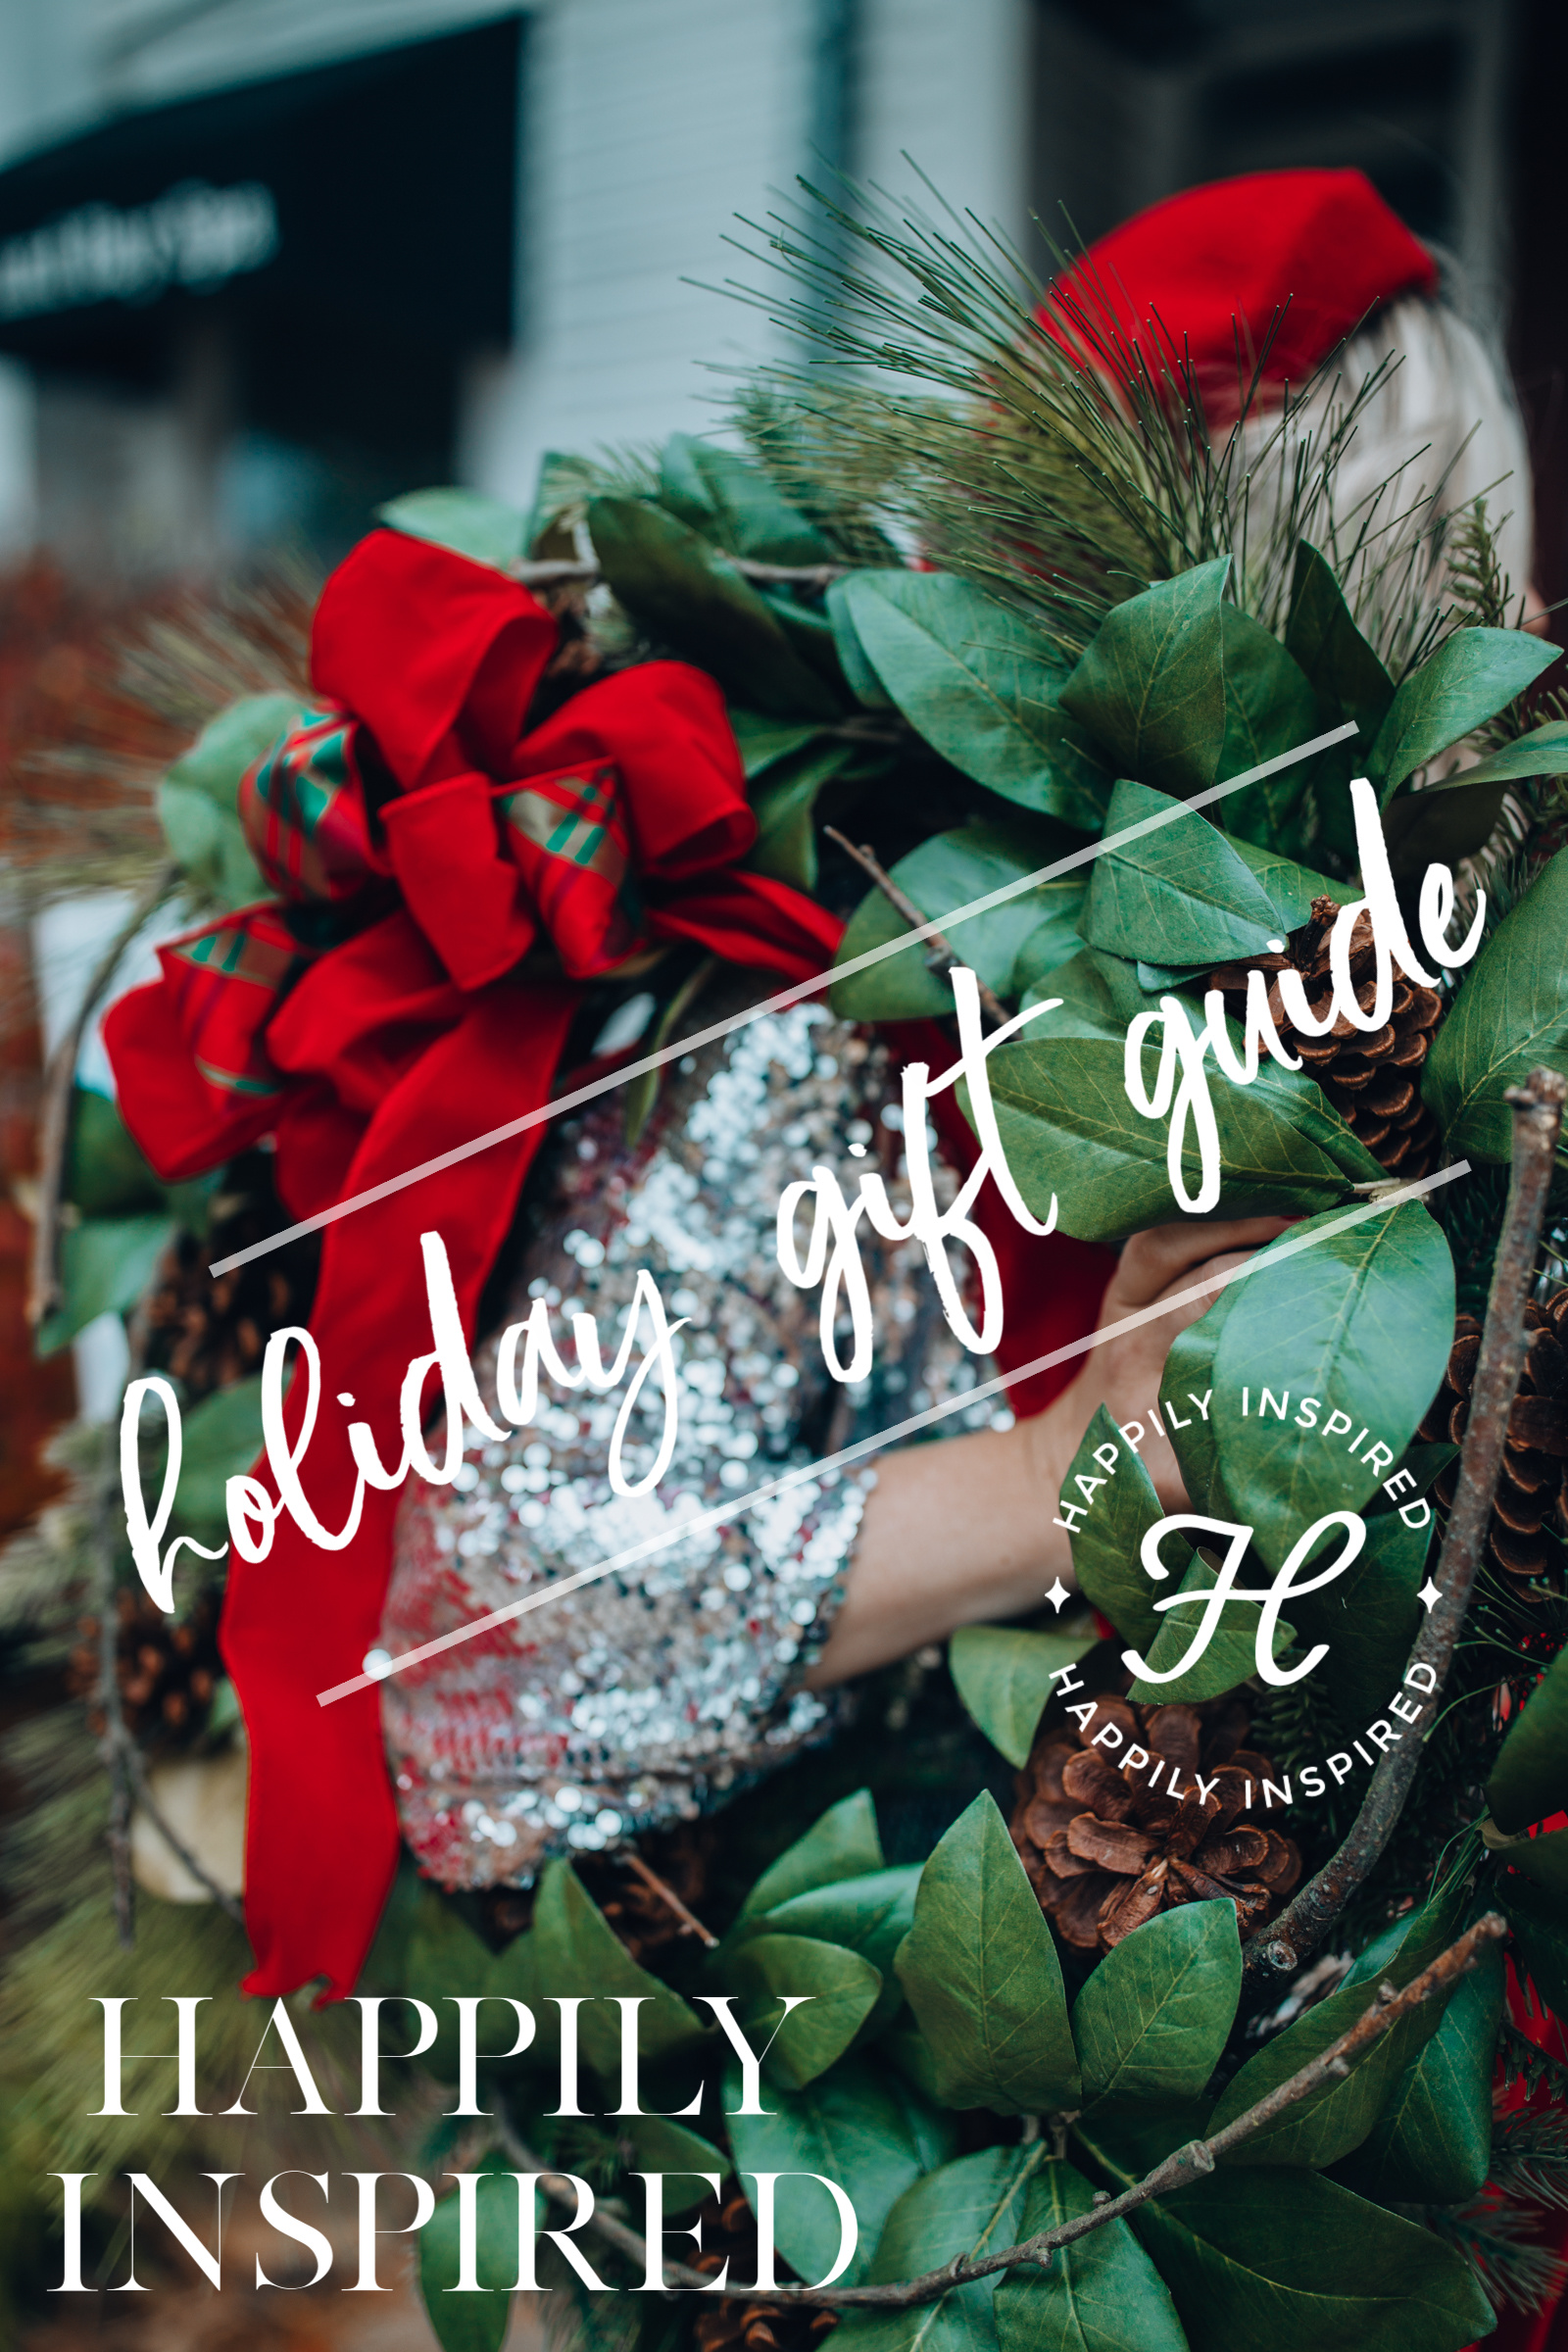 holiday gift guide 2018, happily inspired, christmas gift ideas